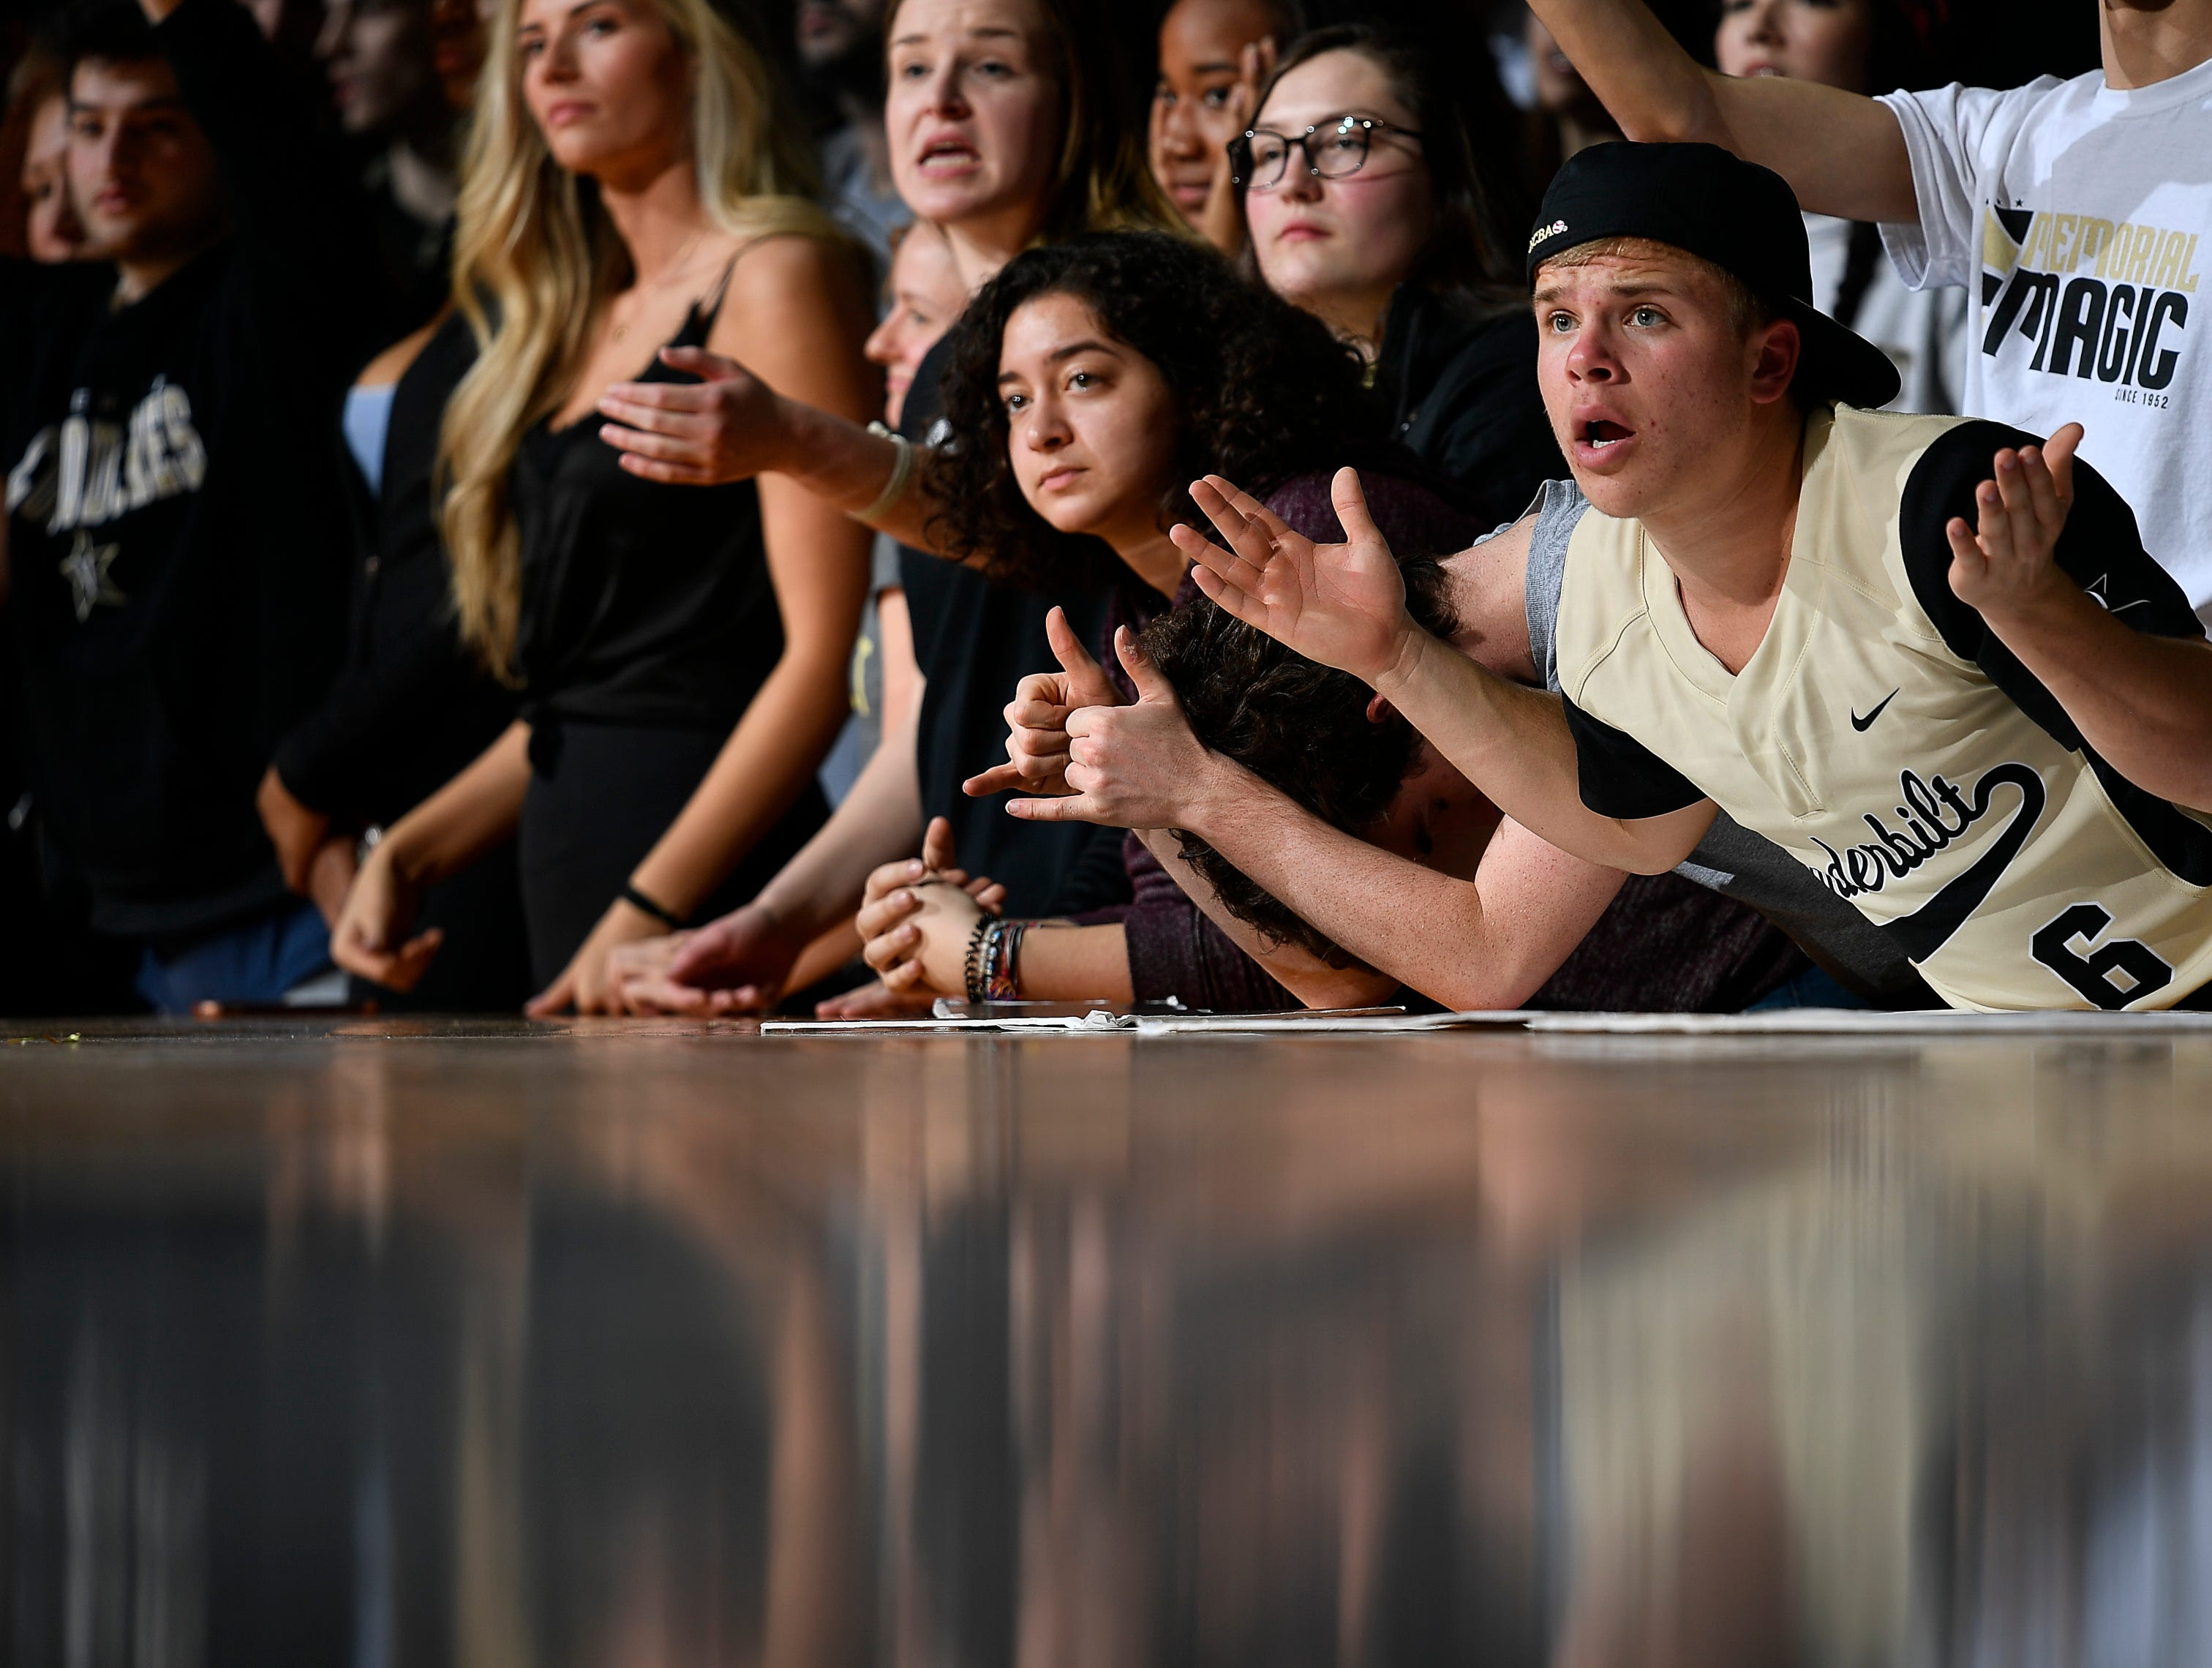 A Vanderbilt fan reacts as they lose 77 to 67 against the Alabama at Memorial Gym Saturday Feb. 9, 2019 in Nashville, Tenn.